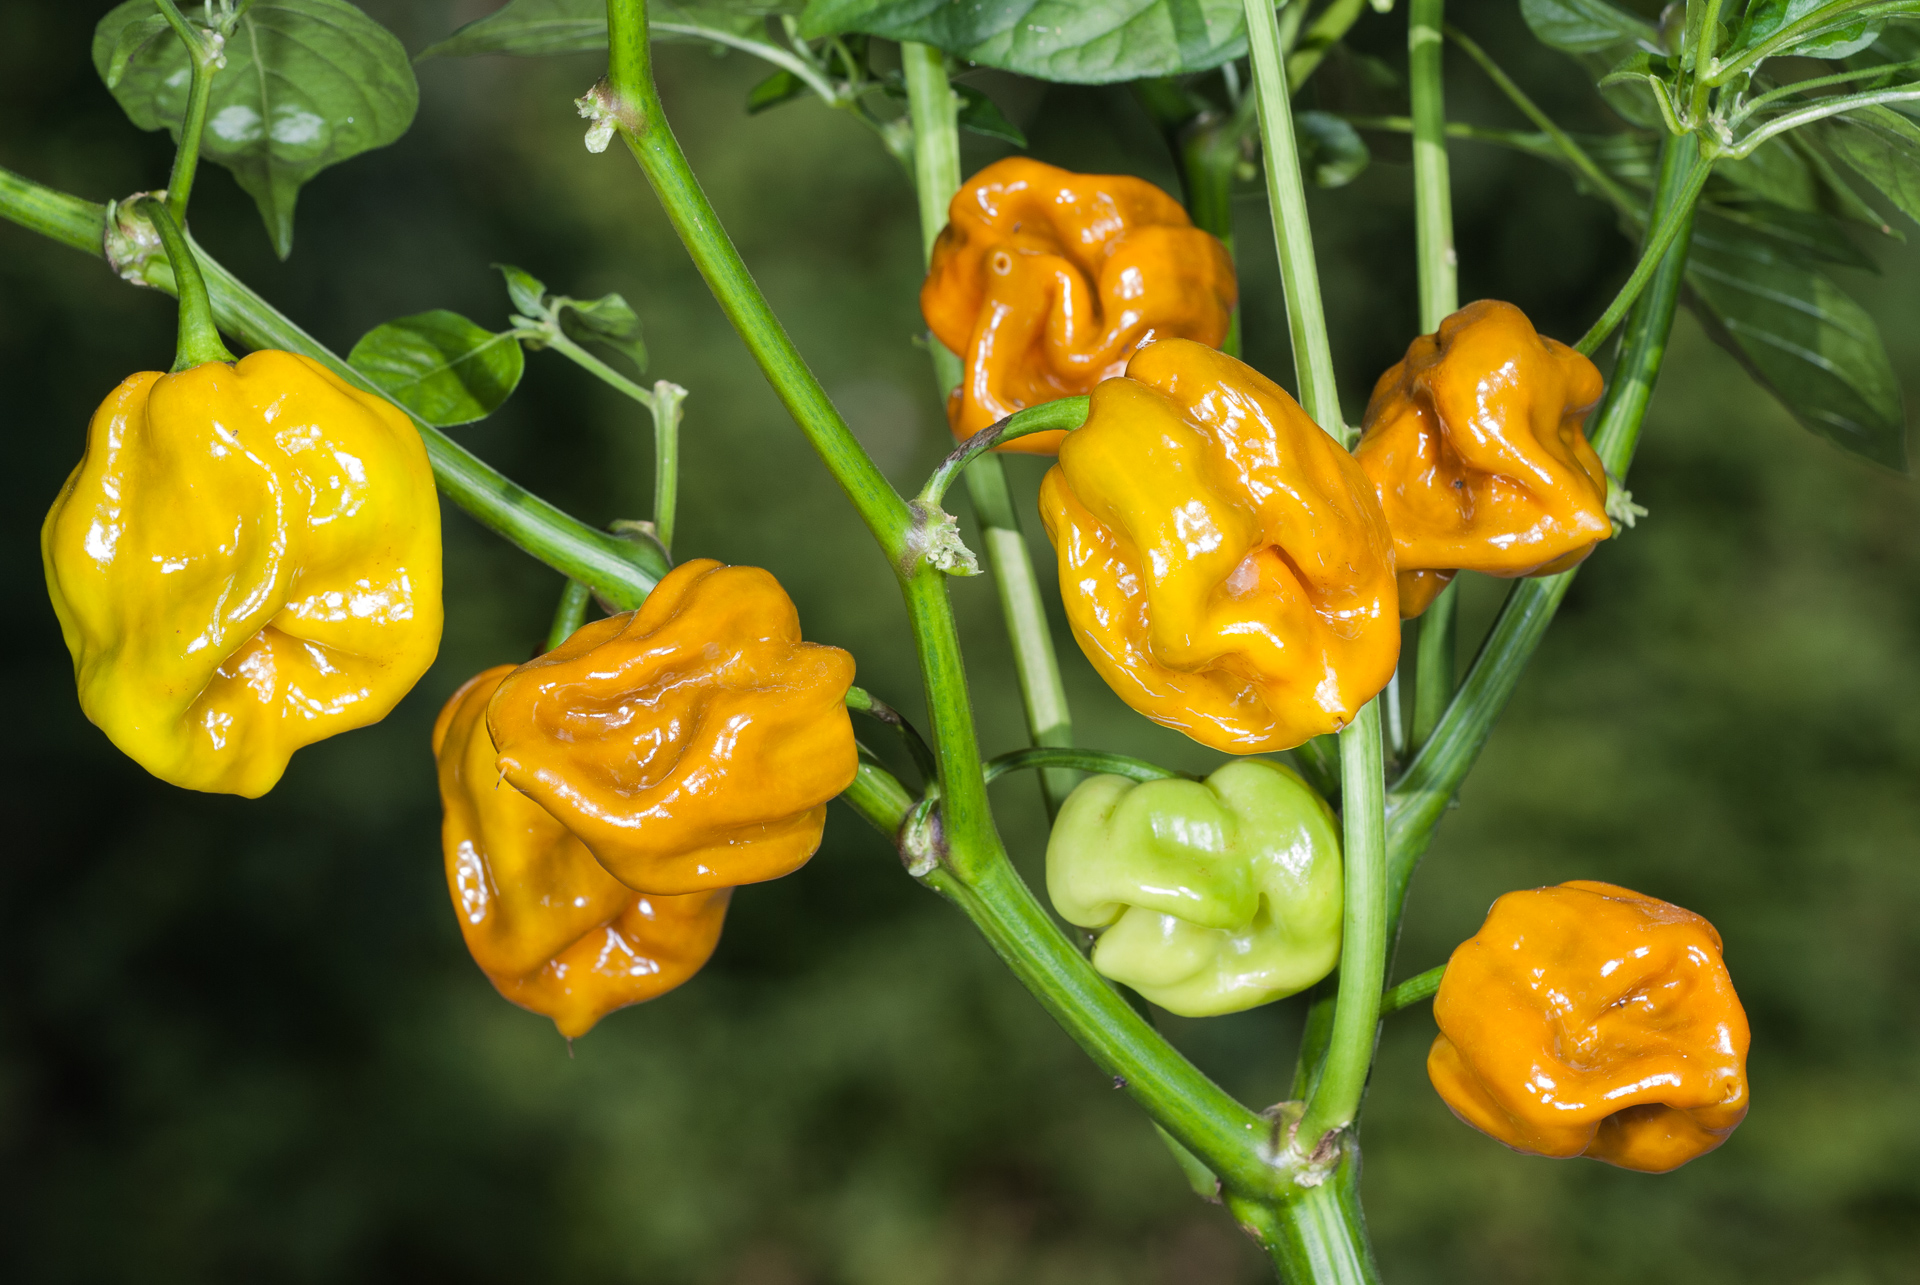 PI 439316 - Capsicum annuum - Chilisorte